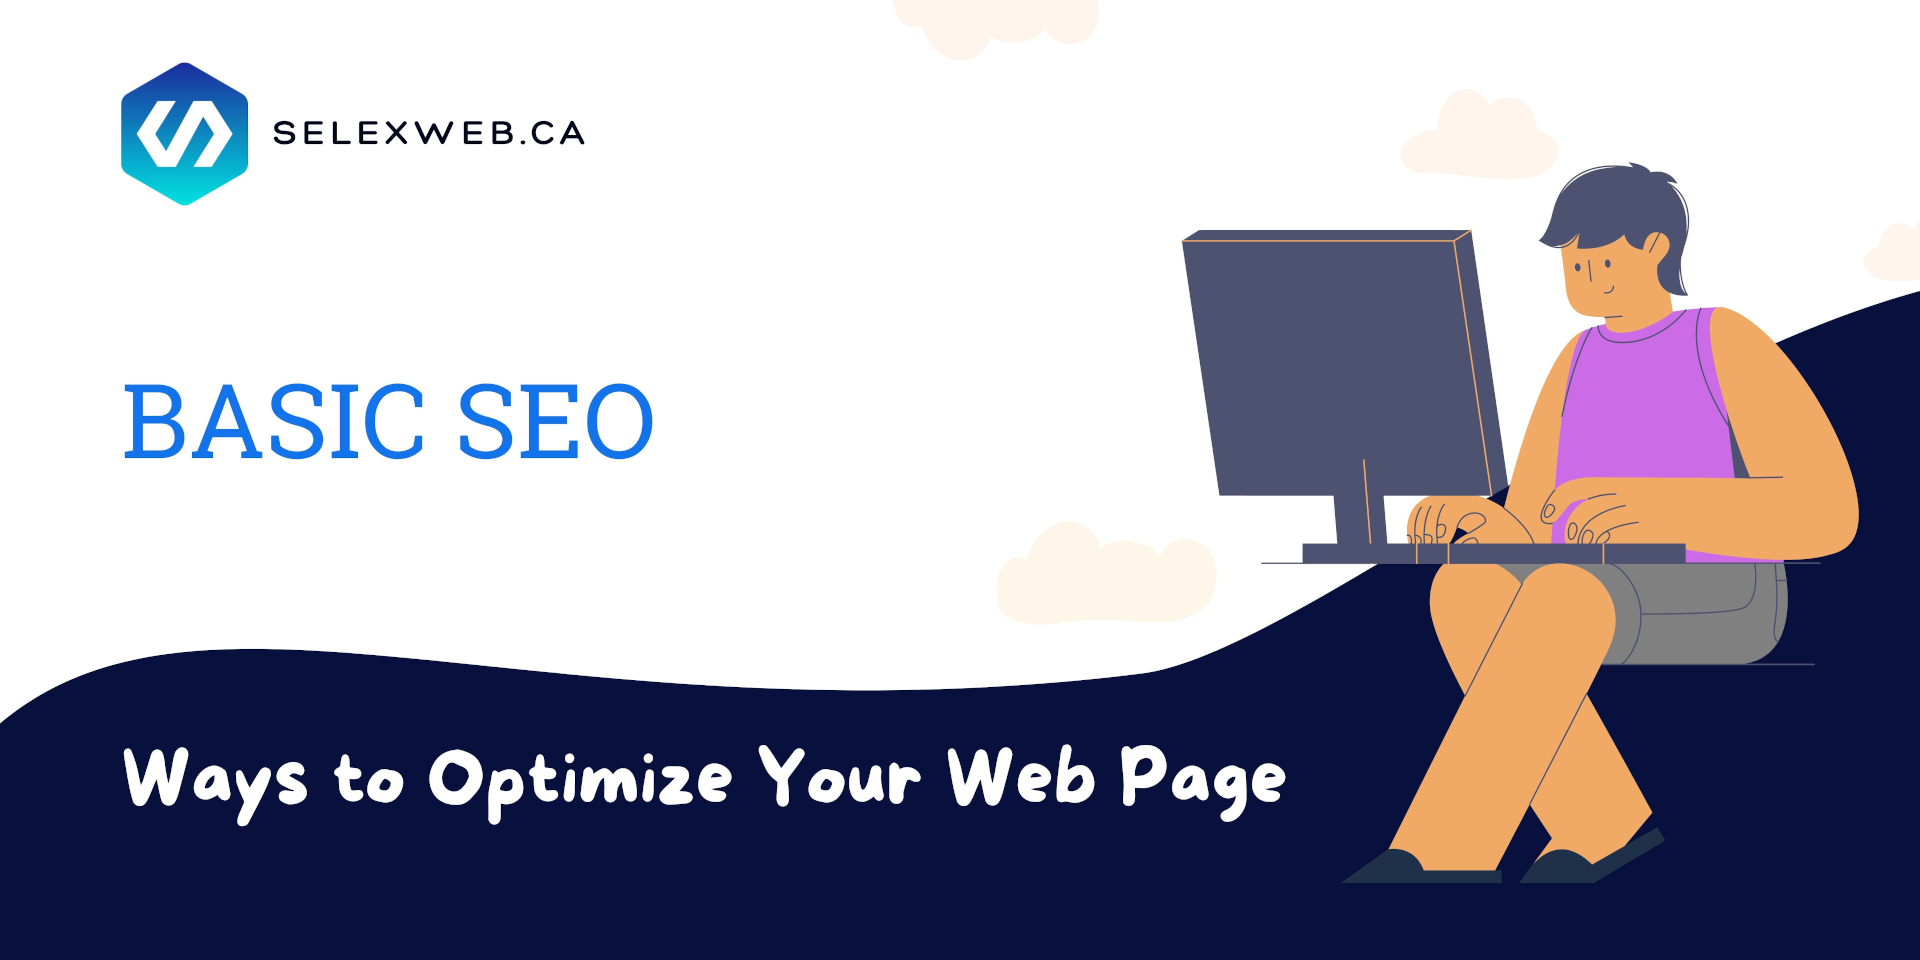 Basic SEO: Ways to Optimize Your Web Page by SelexWeb